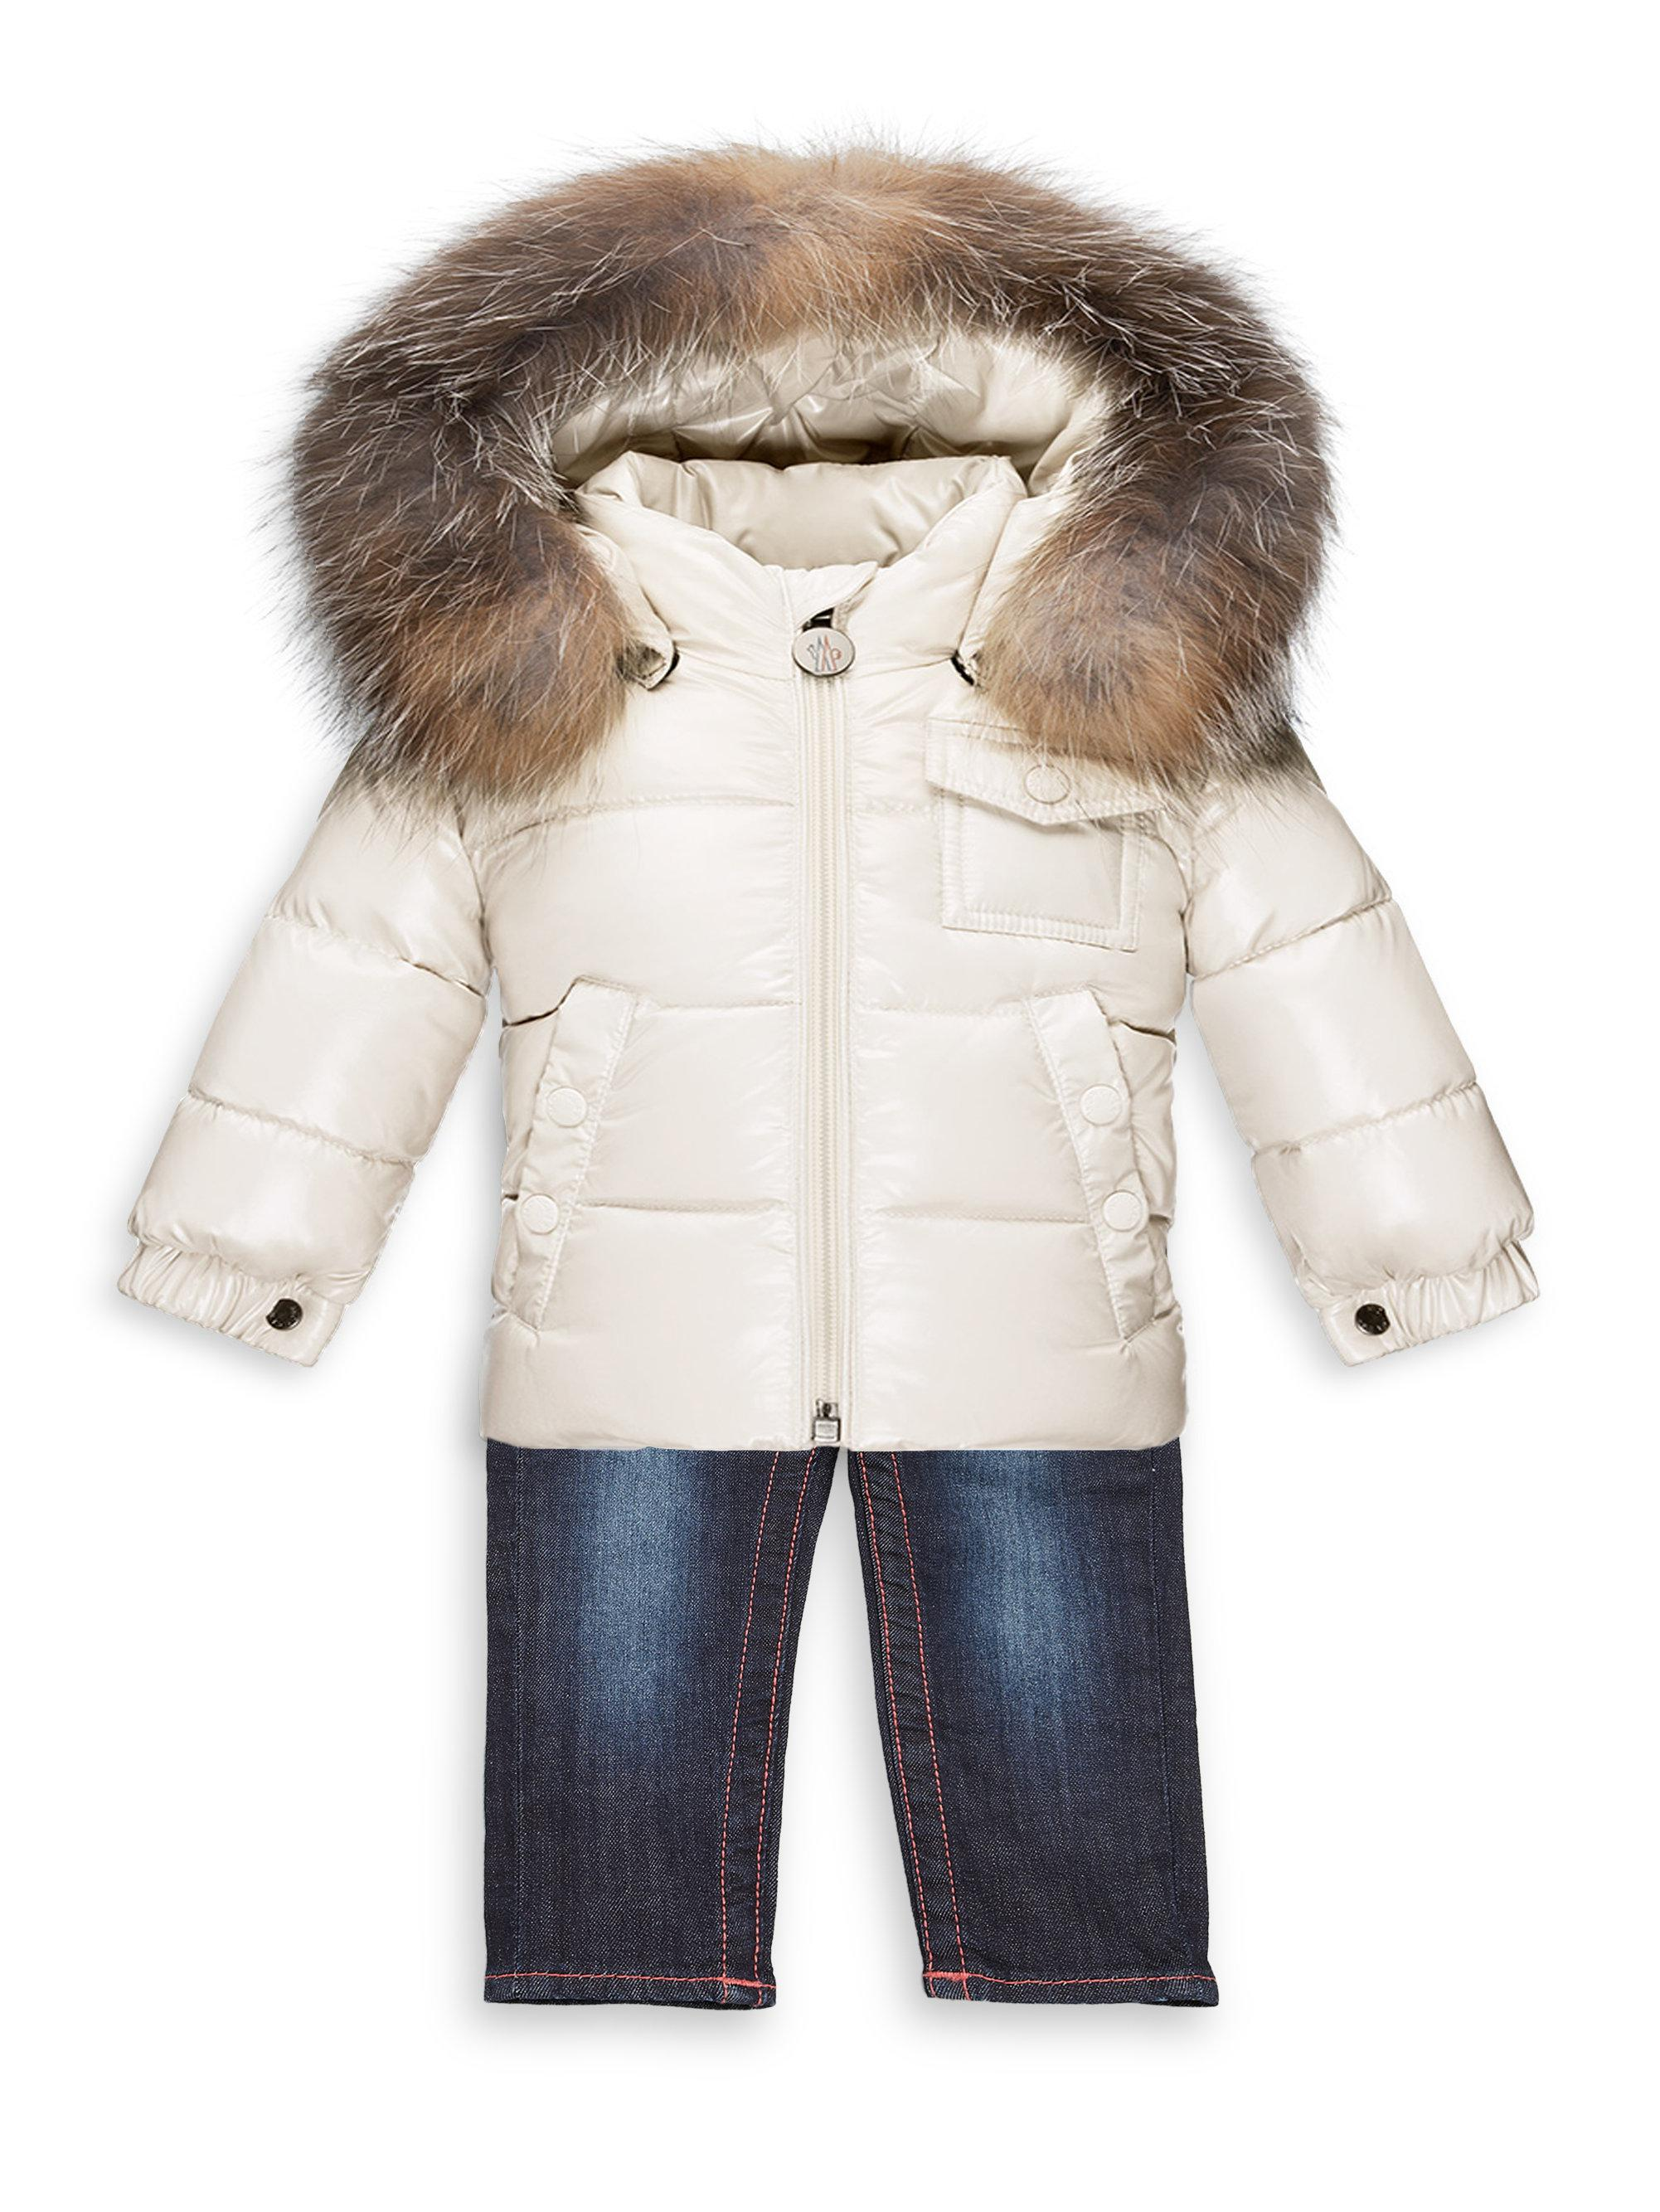 5cce491d3 Moncler Baby s K2 Fur-trim Puffer Jacket in Natural - Lyst